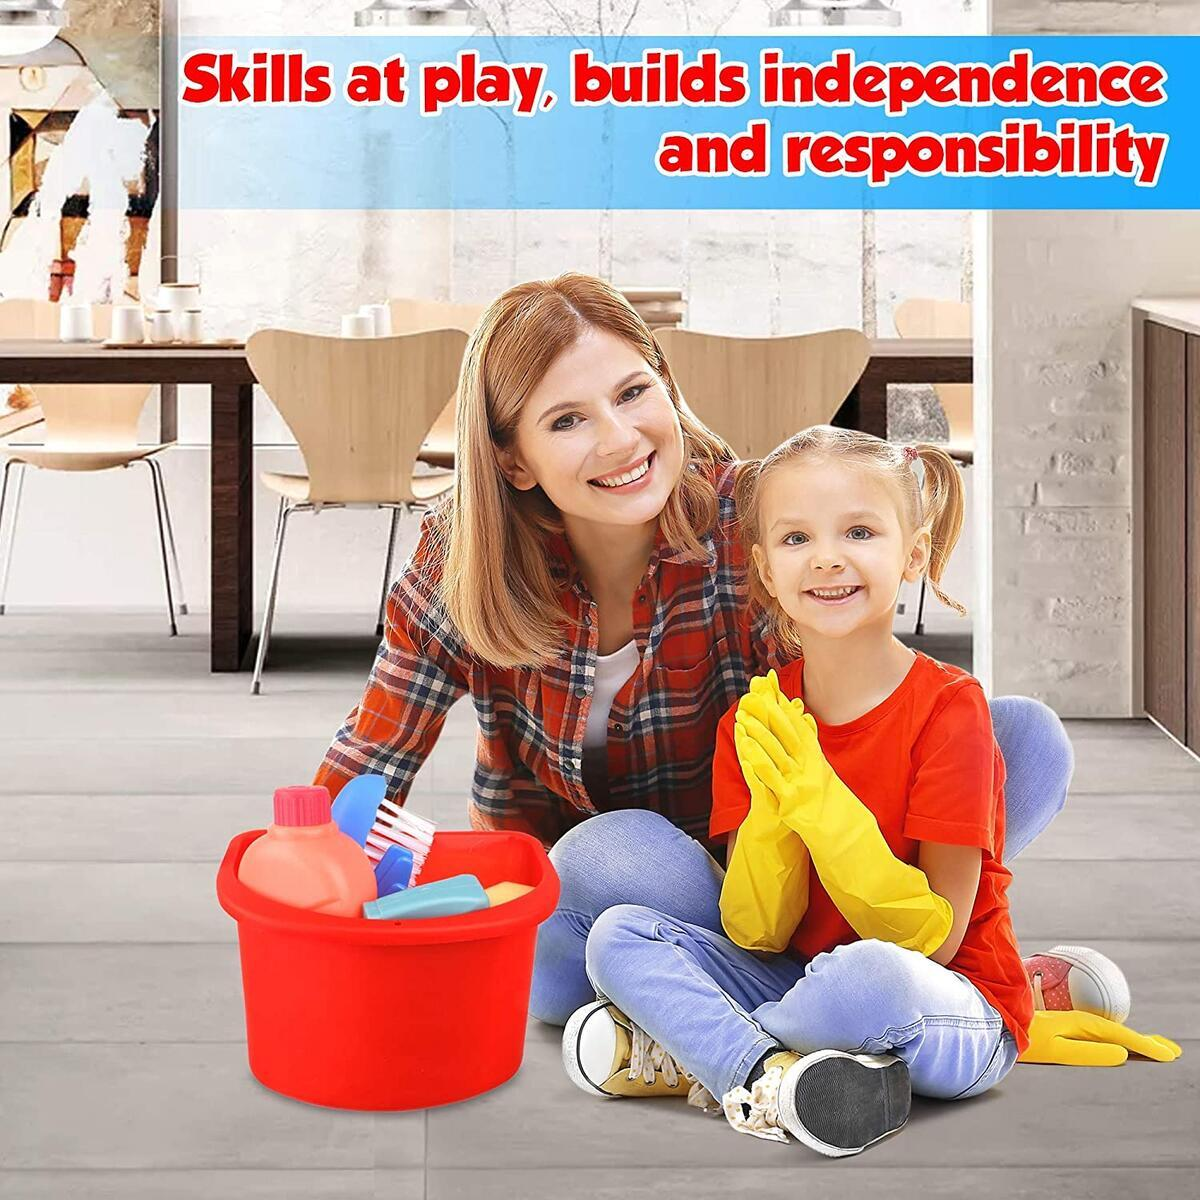 Playkidz Cleaning Pail Set, 6Pcs Includes Spray, Sponge, Squeegee, Brush, and Storage Bucket, Play Helper Realistic Housekeeping Set, Recommended for Ages 3+